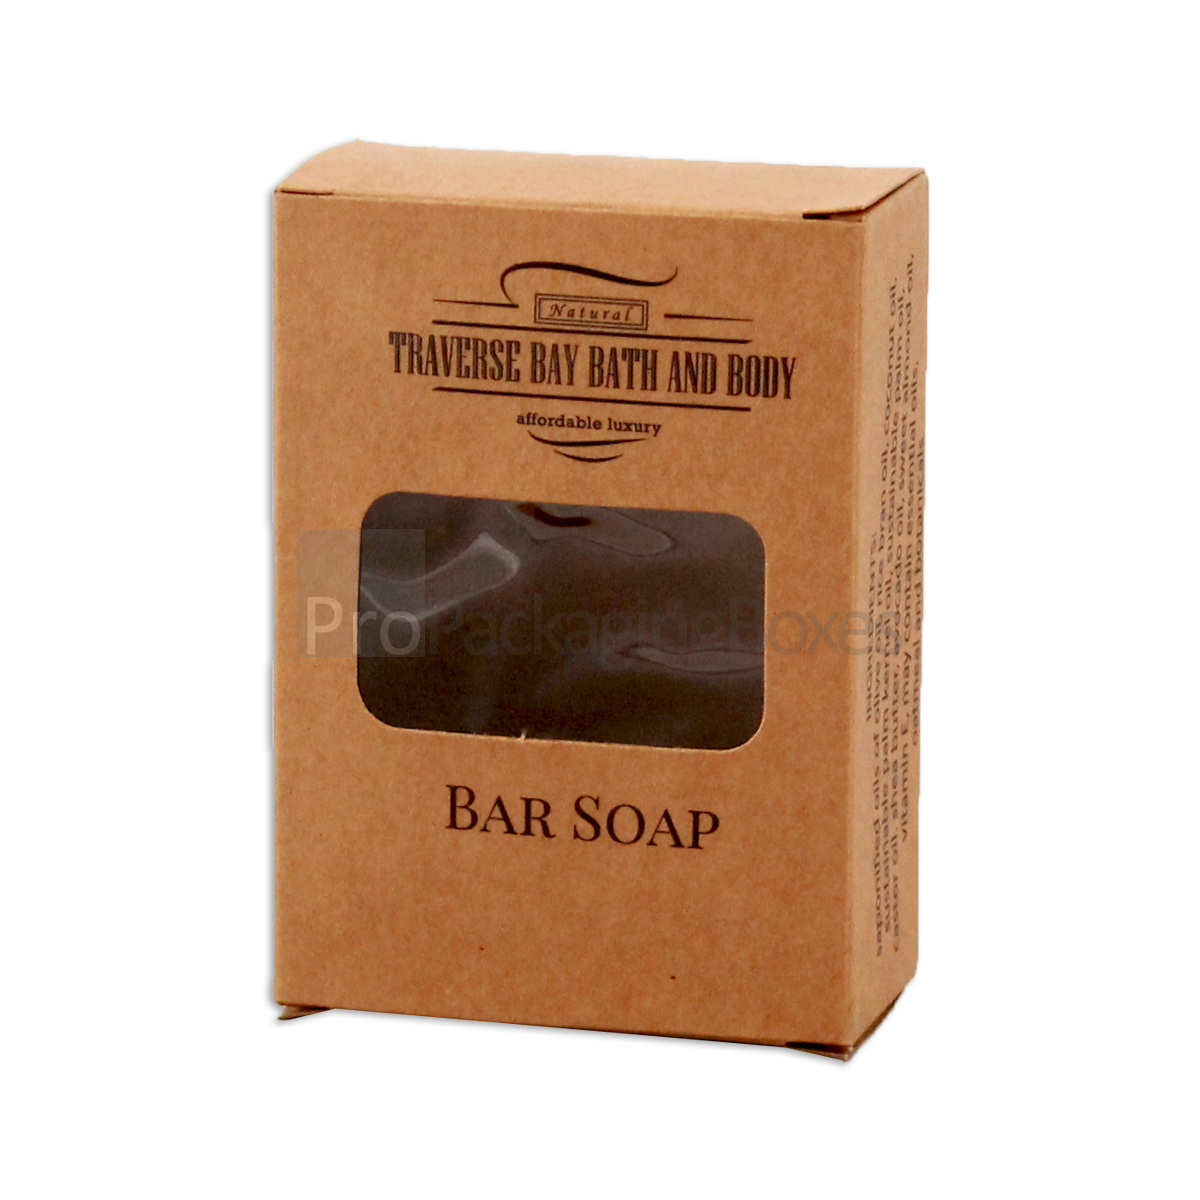 Custom Printed Soap Packaging Boxes in kraft card stock